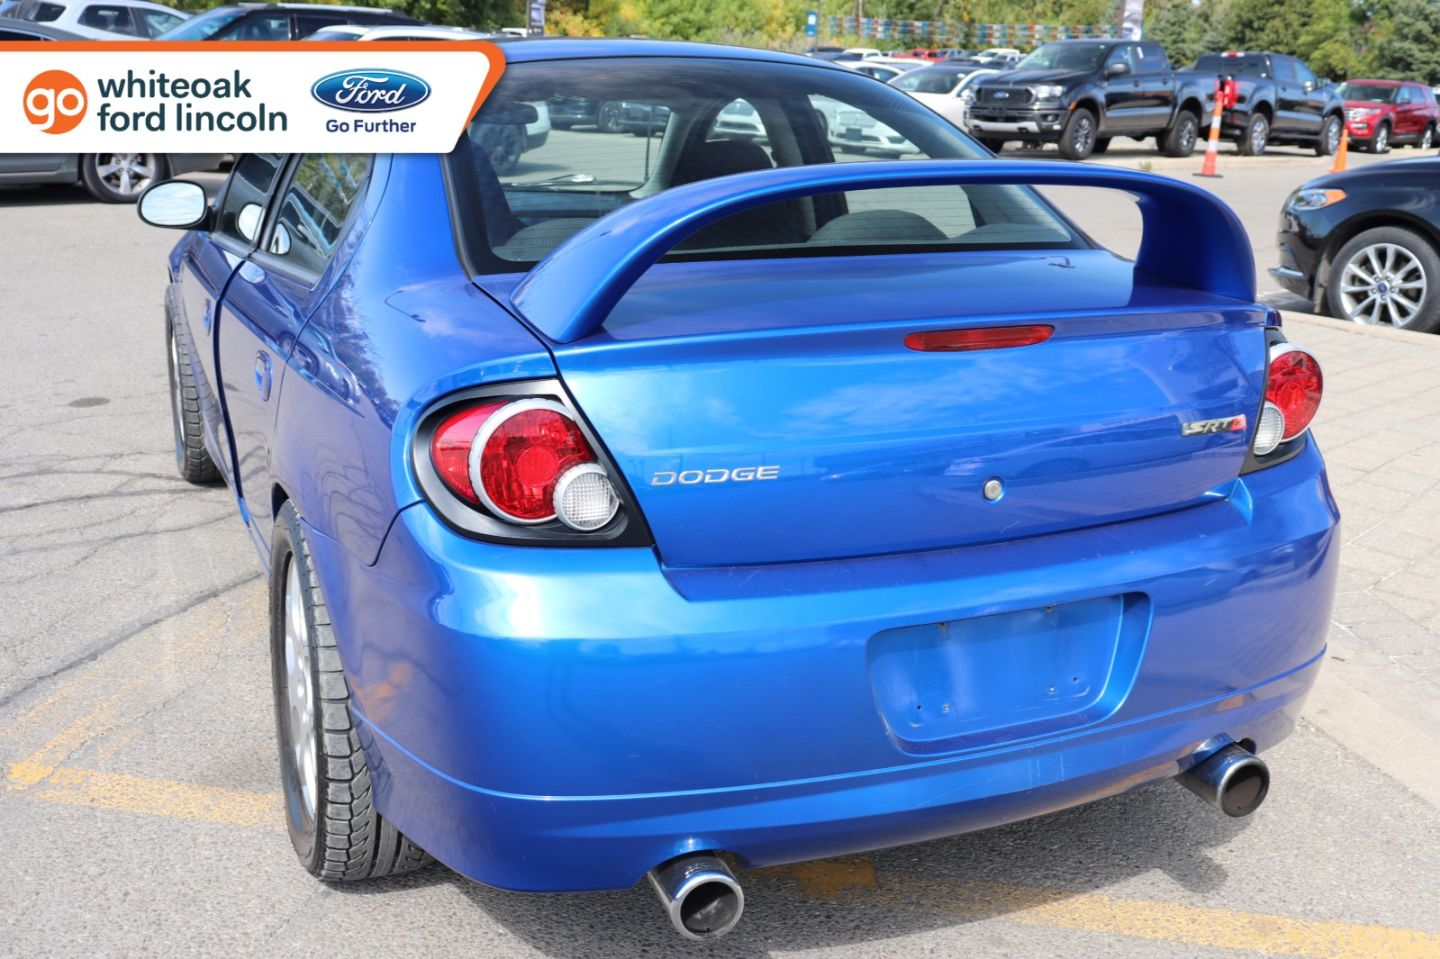 2004 Dodge SX 2.0 SRT4 for sale in Mississauga, Ontario